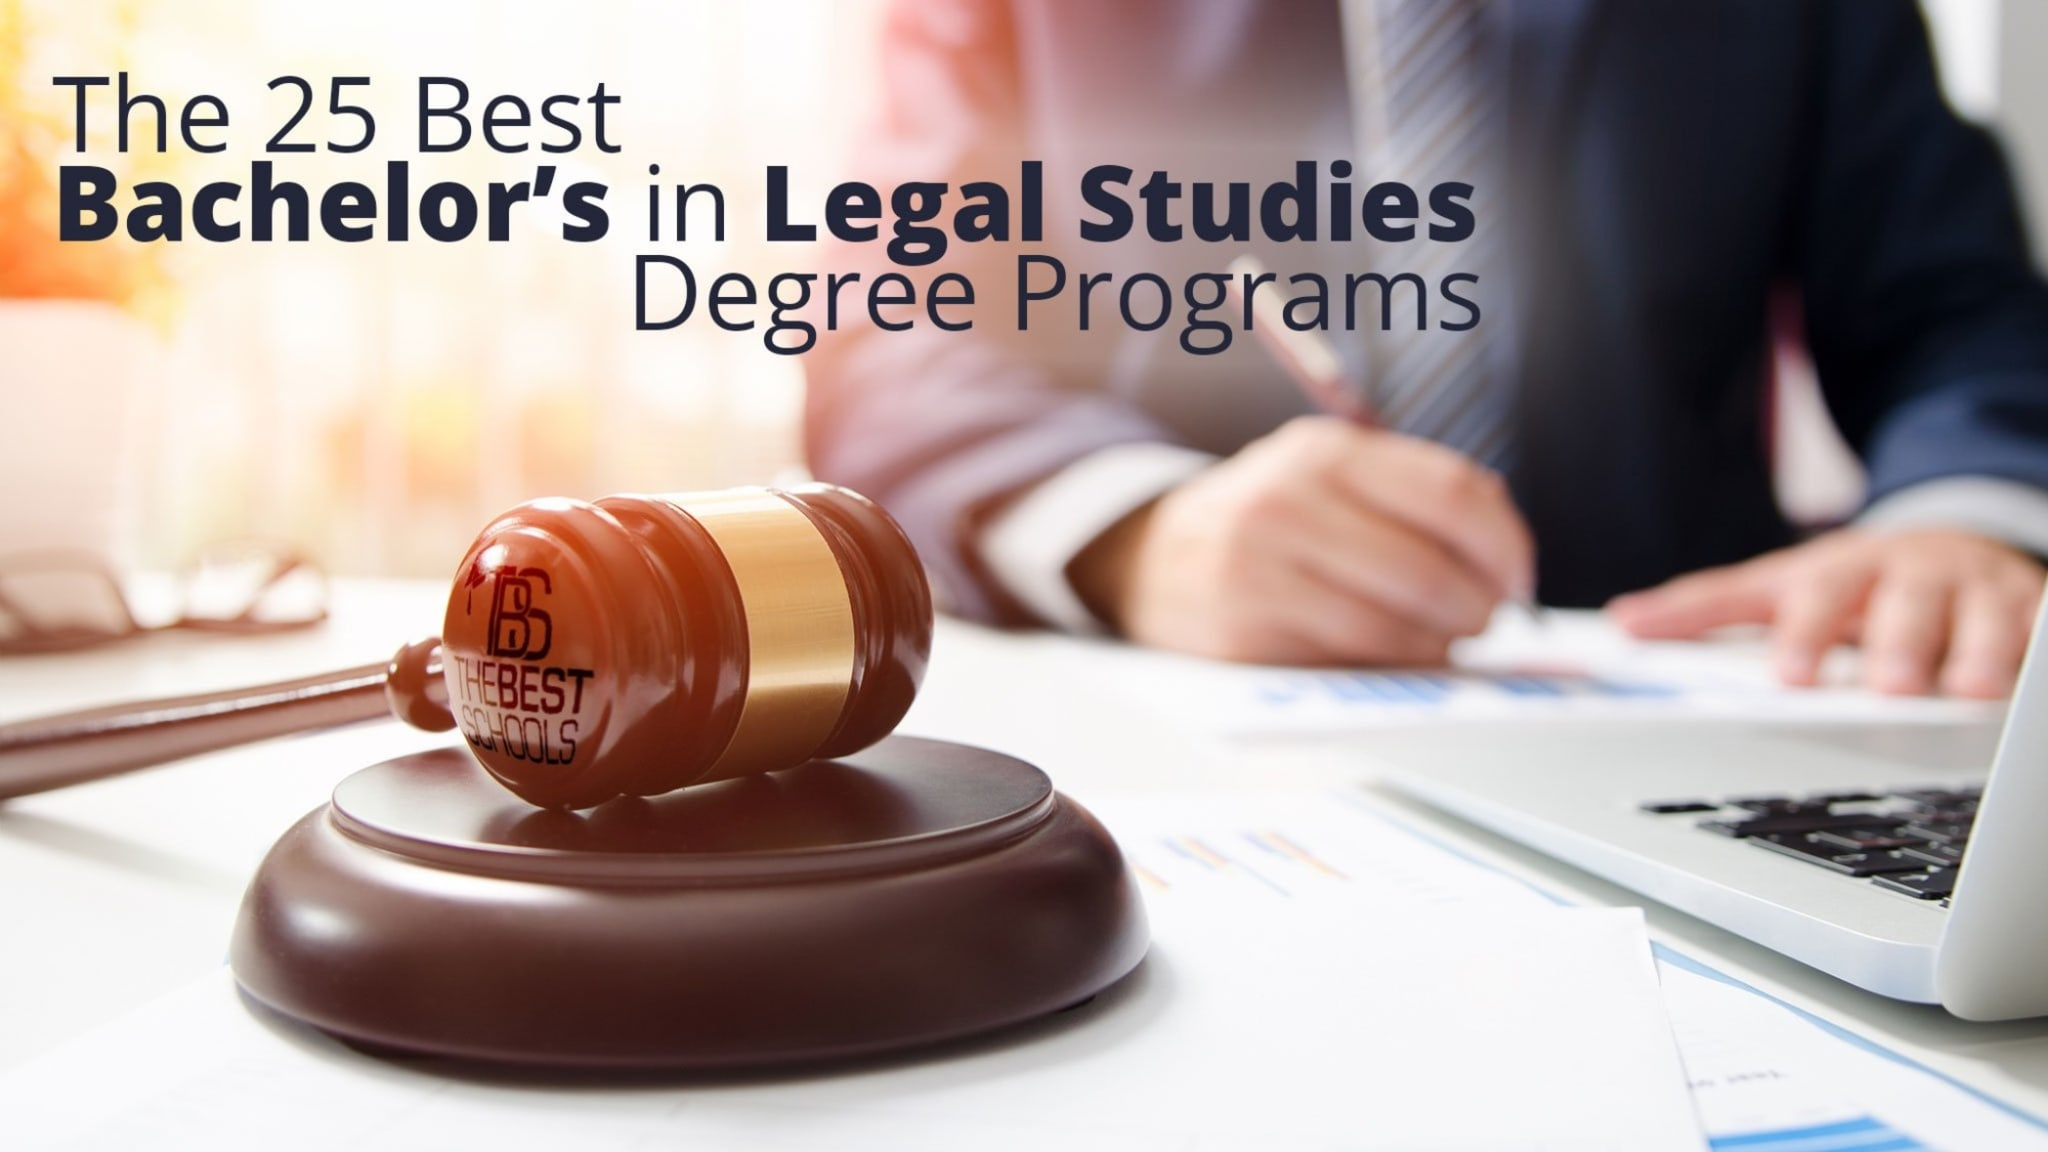 The 25 Best Bachelors In Legal Studies Degree Programs